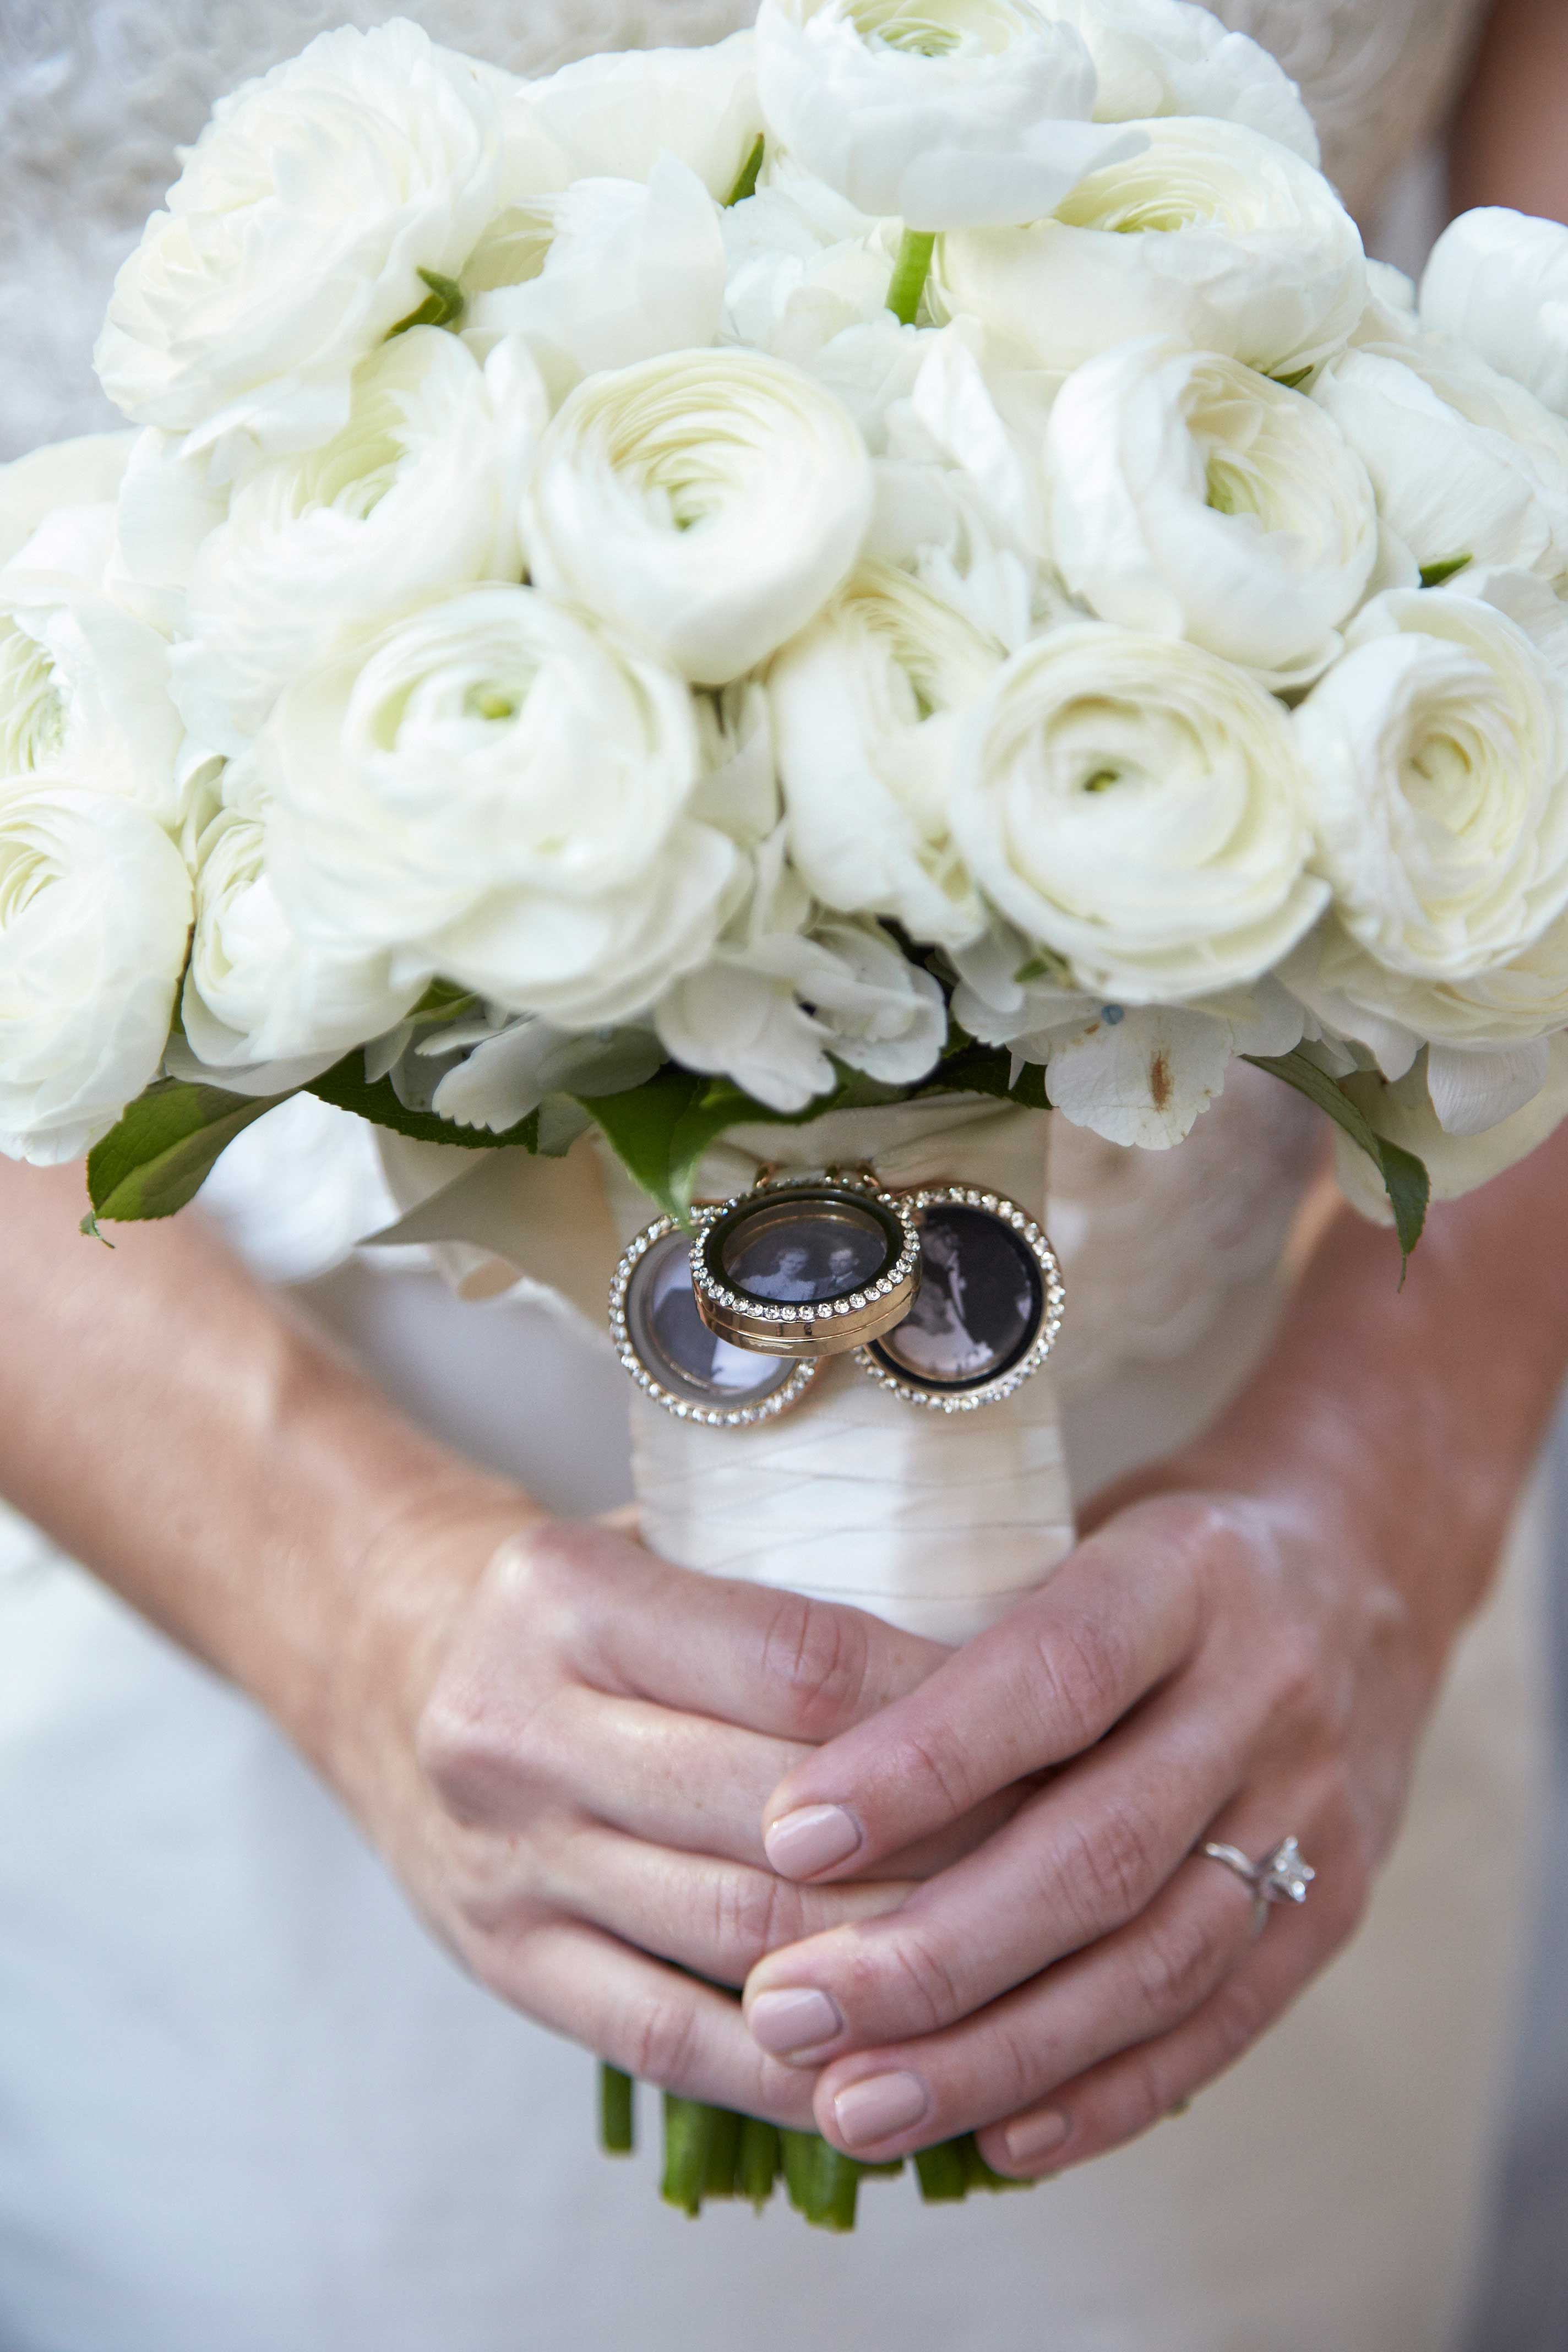 Bouquet of white roses with charms holding family photos of parents grandparents bridal bouquet